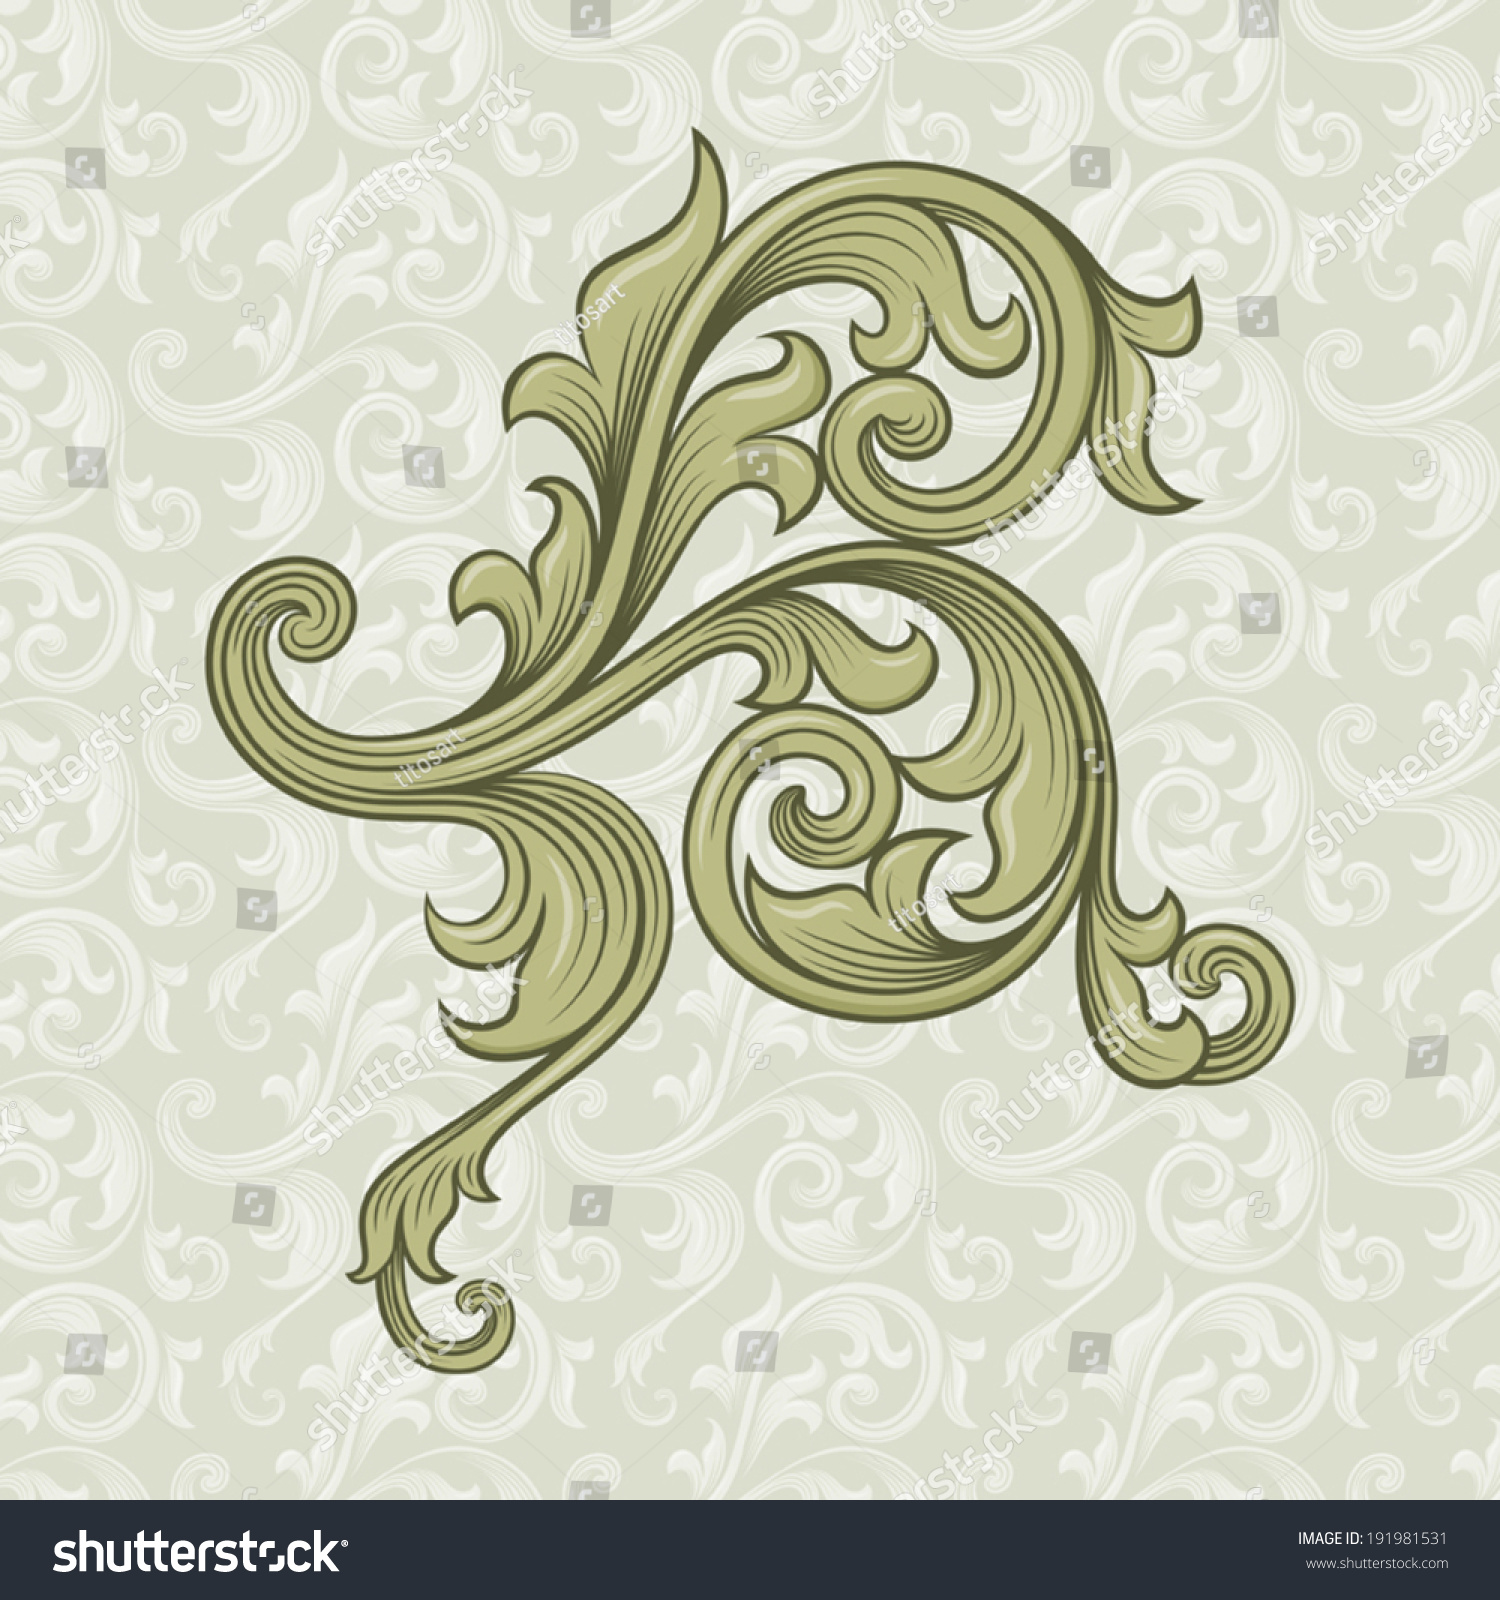 Antique Scroll Design: Vintage Baroque Scroll Design Element Motif Stock Vector